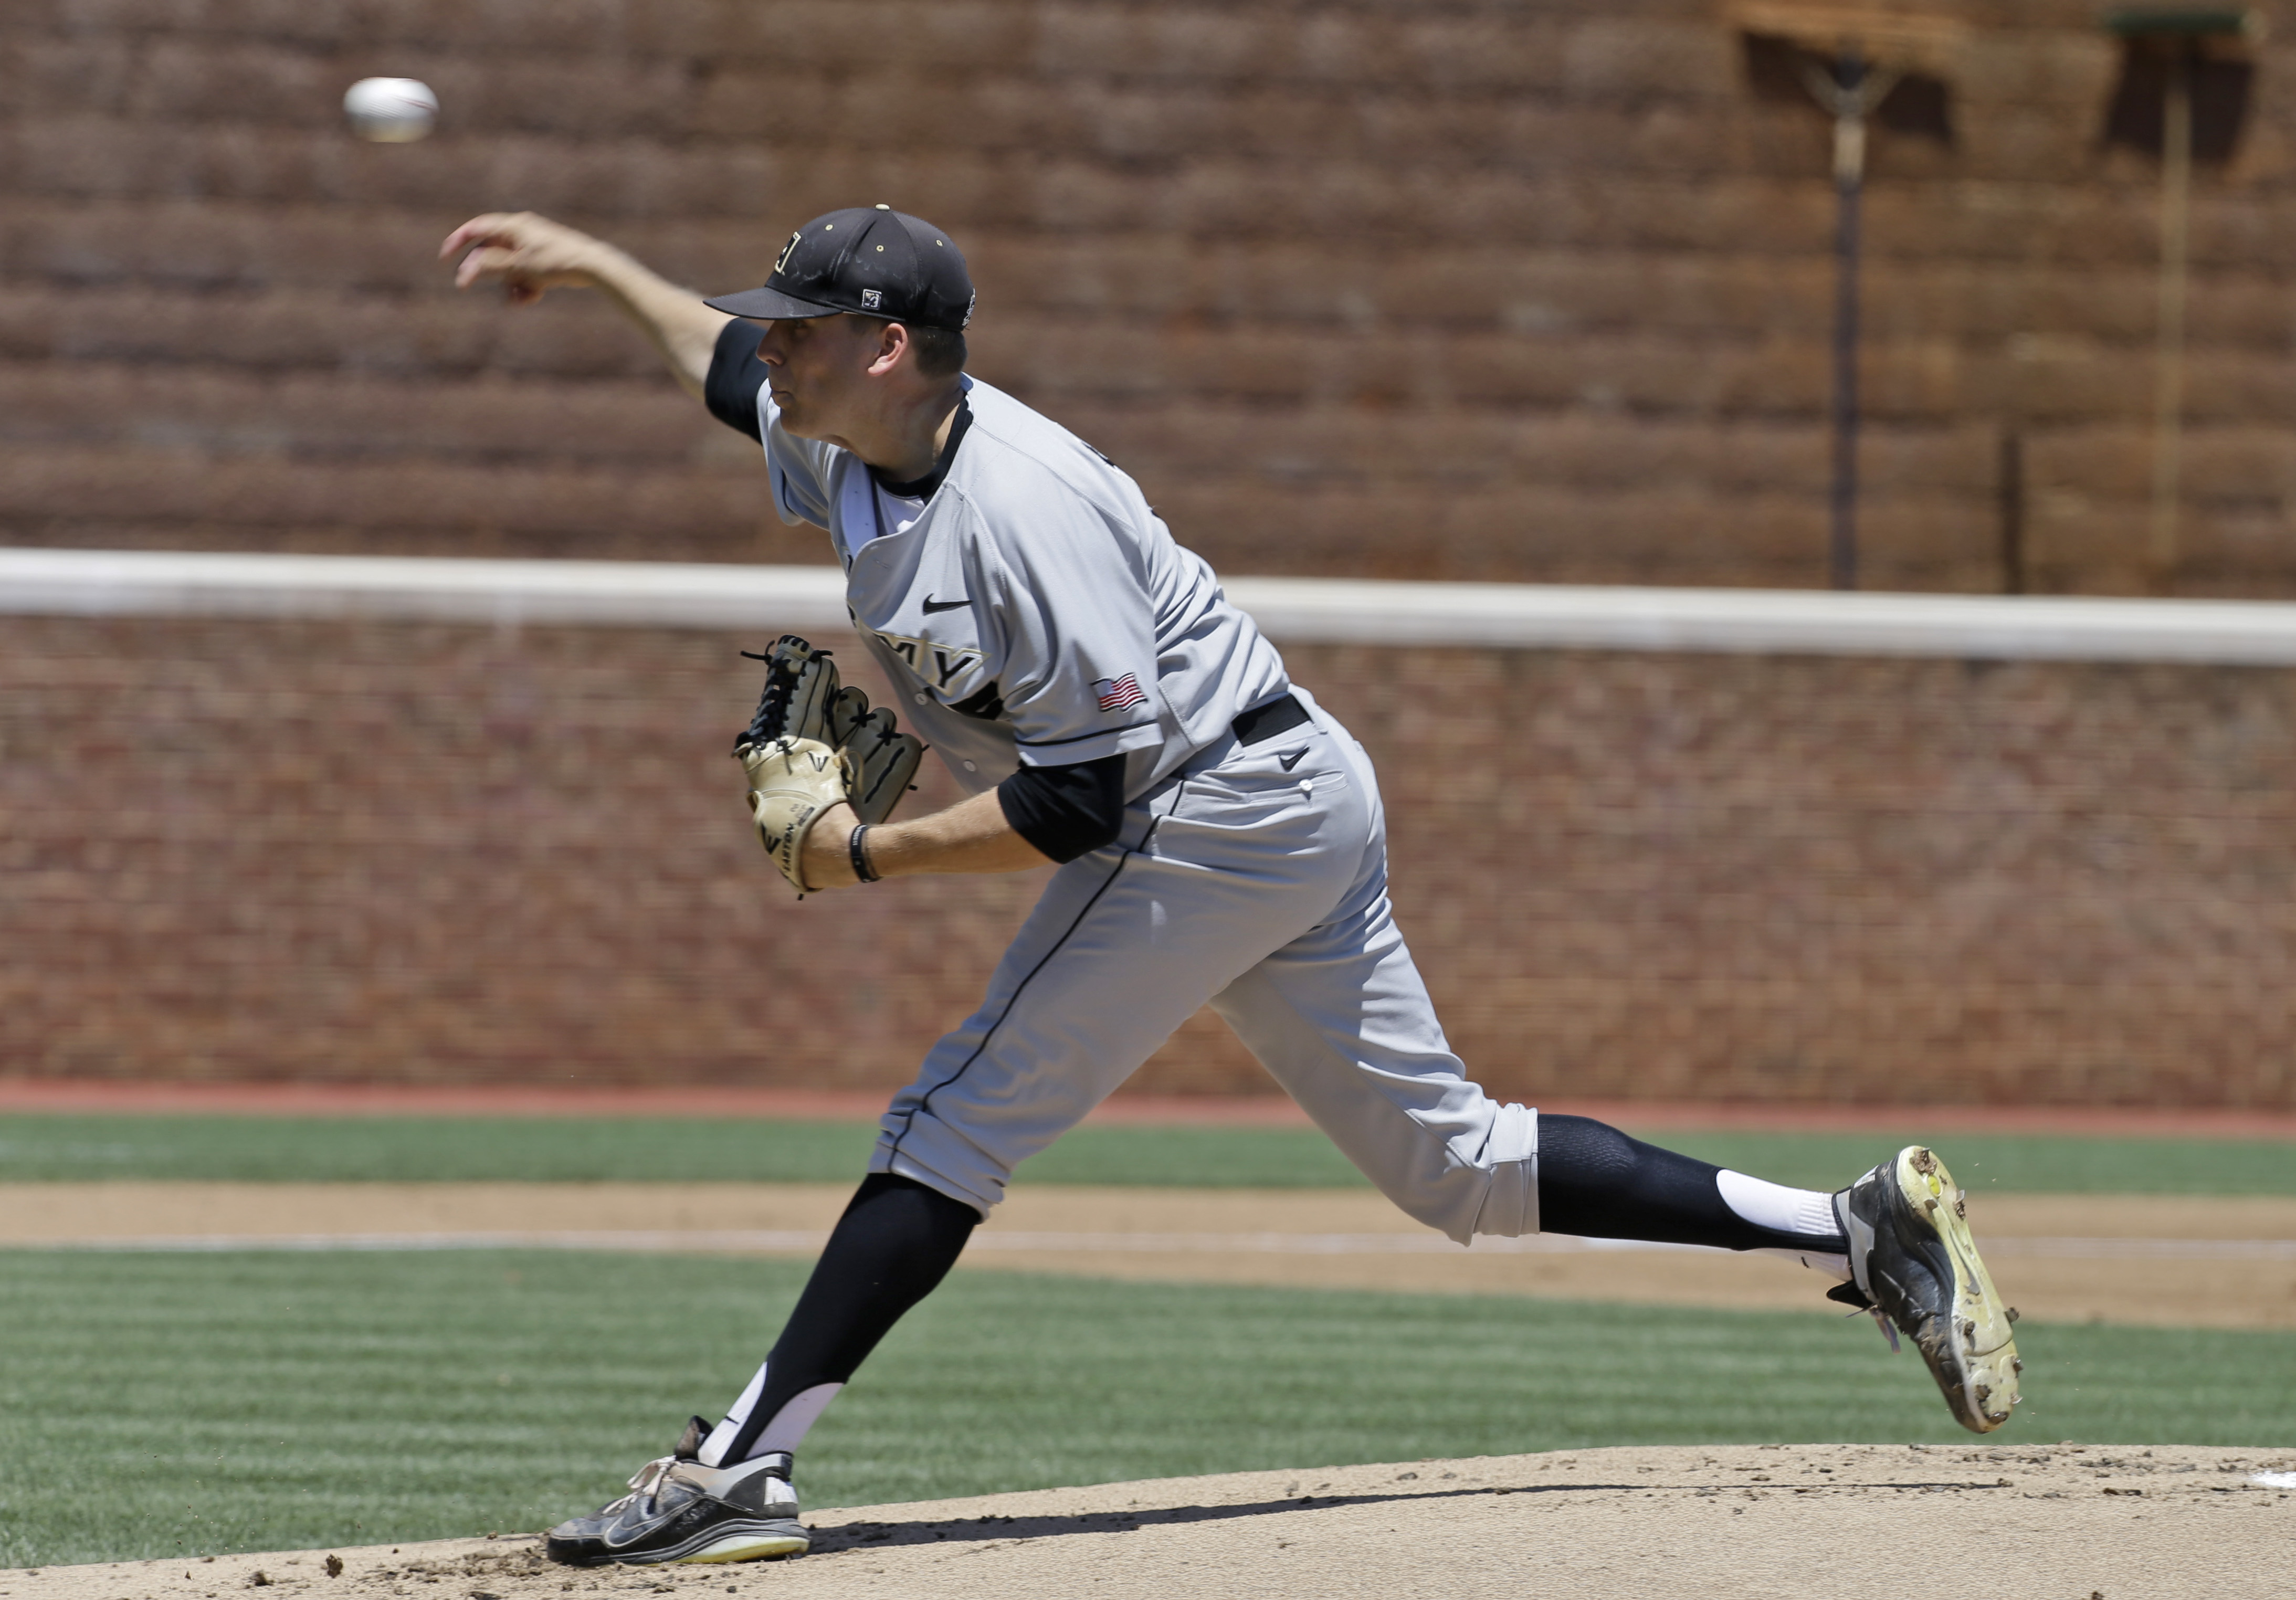 West Point grad to make MLB pitching debut ... in Canada